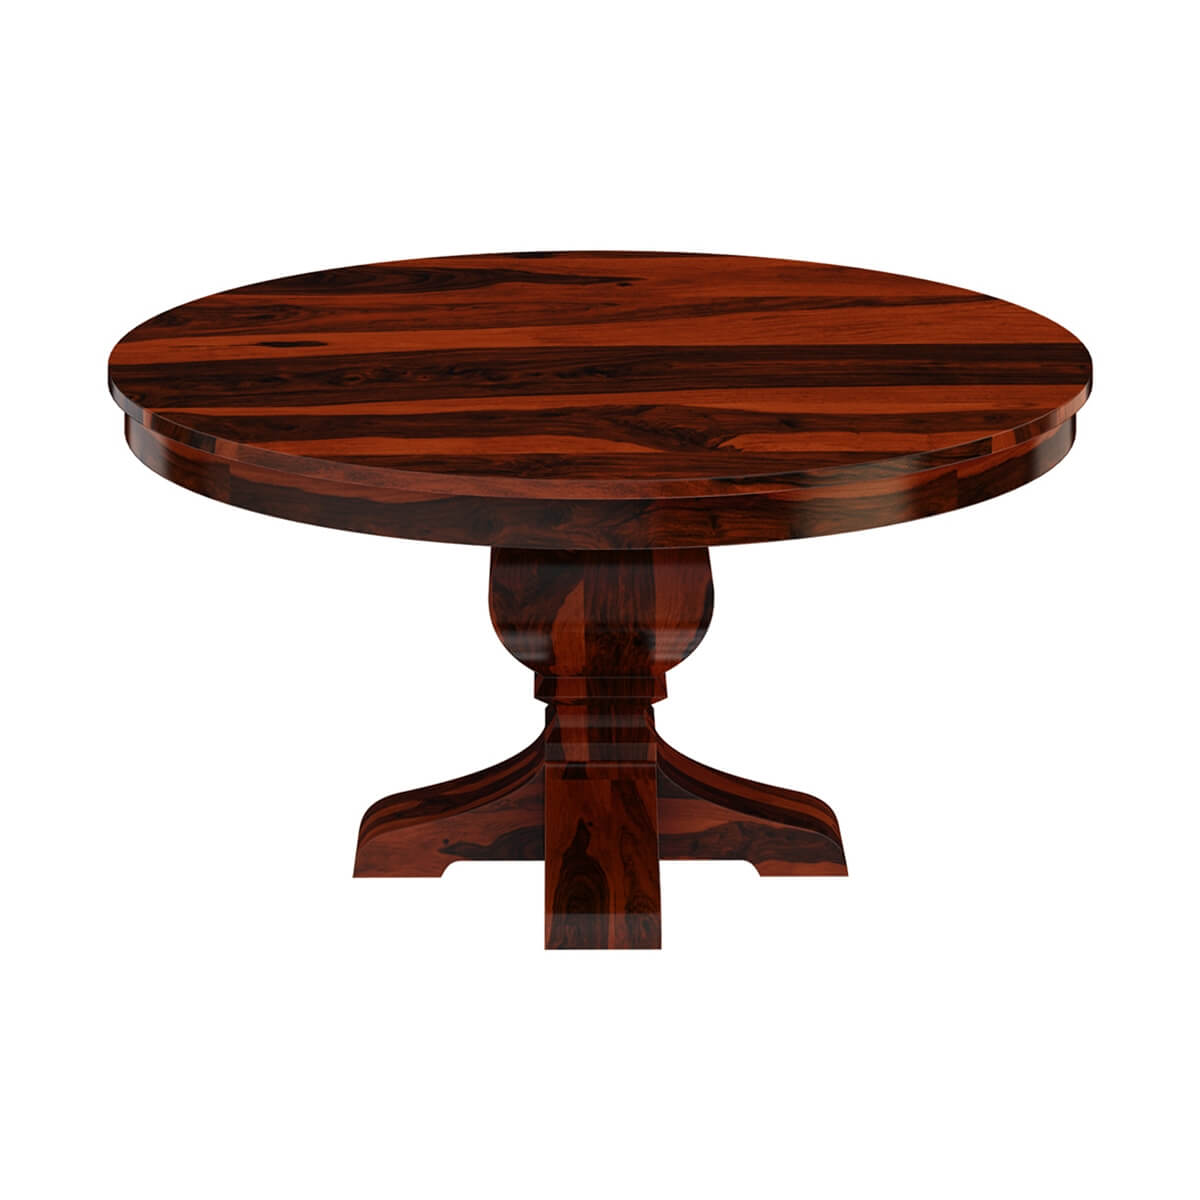 Missouri 60 solid wood round pedestal dining table for Solid wood round tables dining